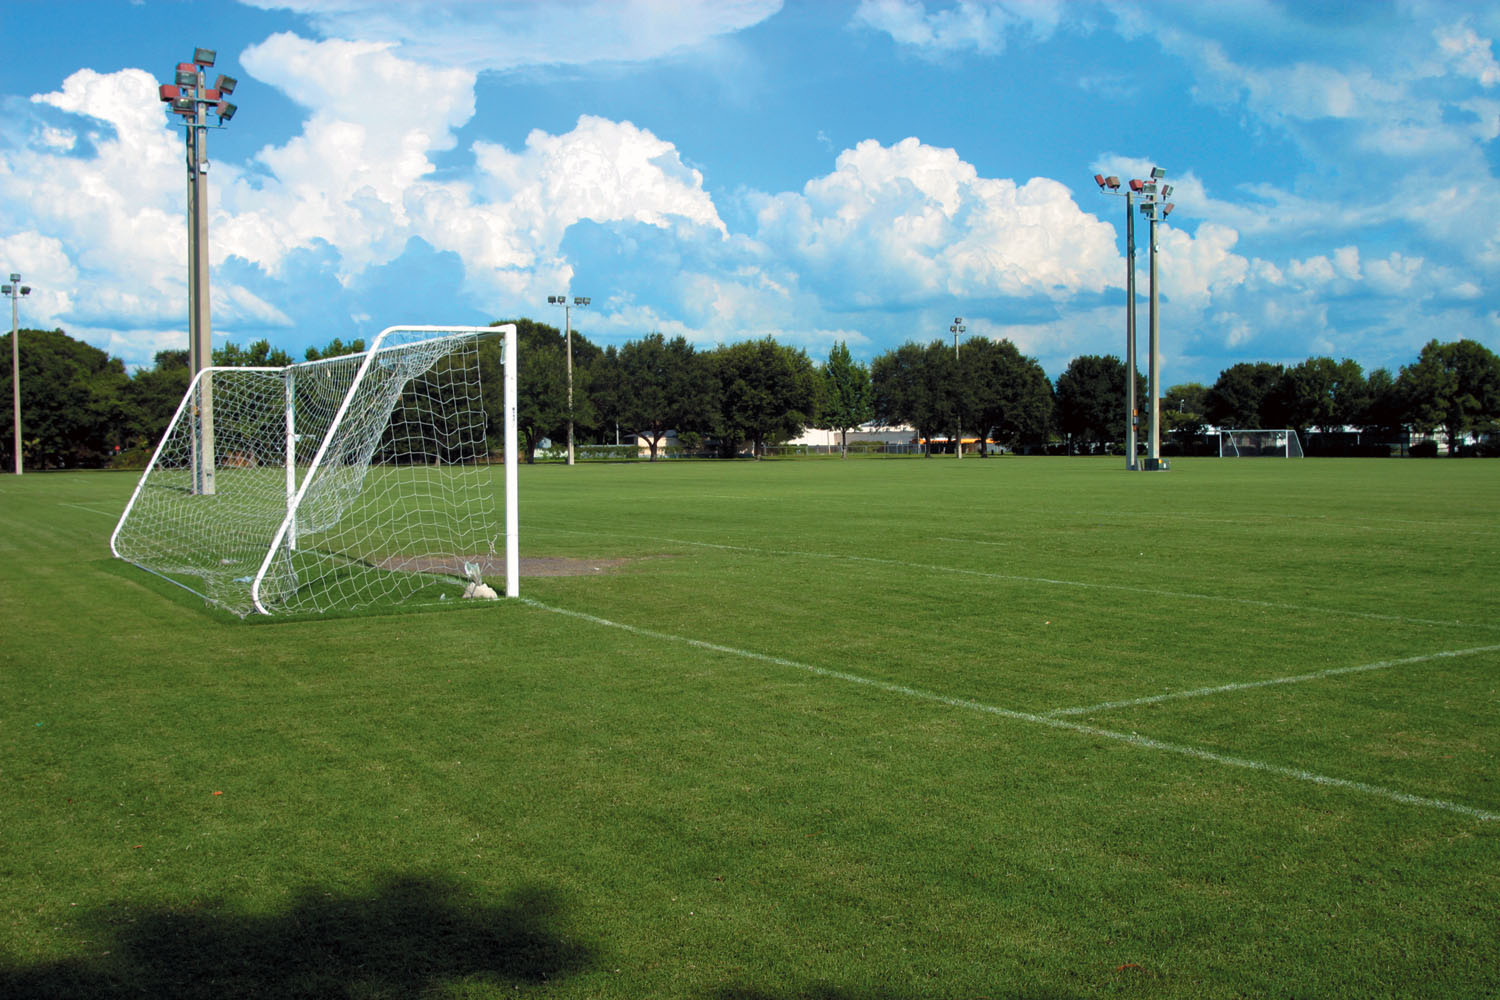 A view of the fields at Southwest Complex